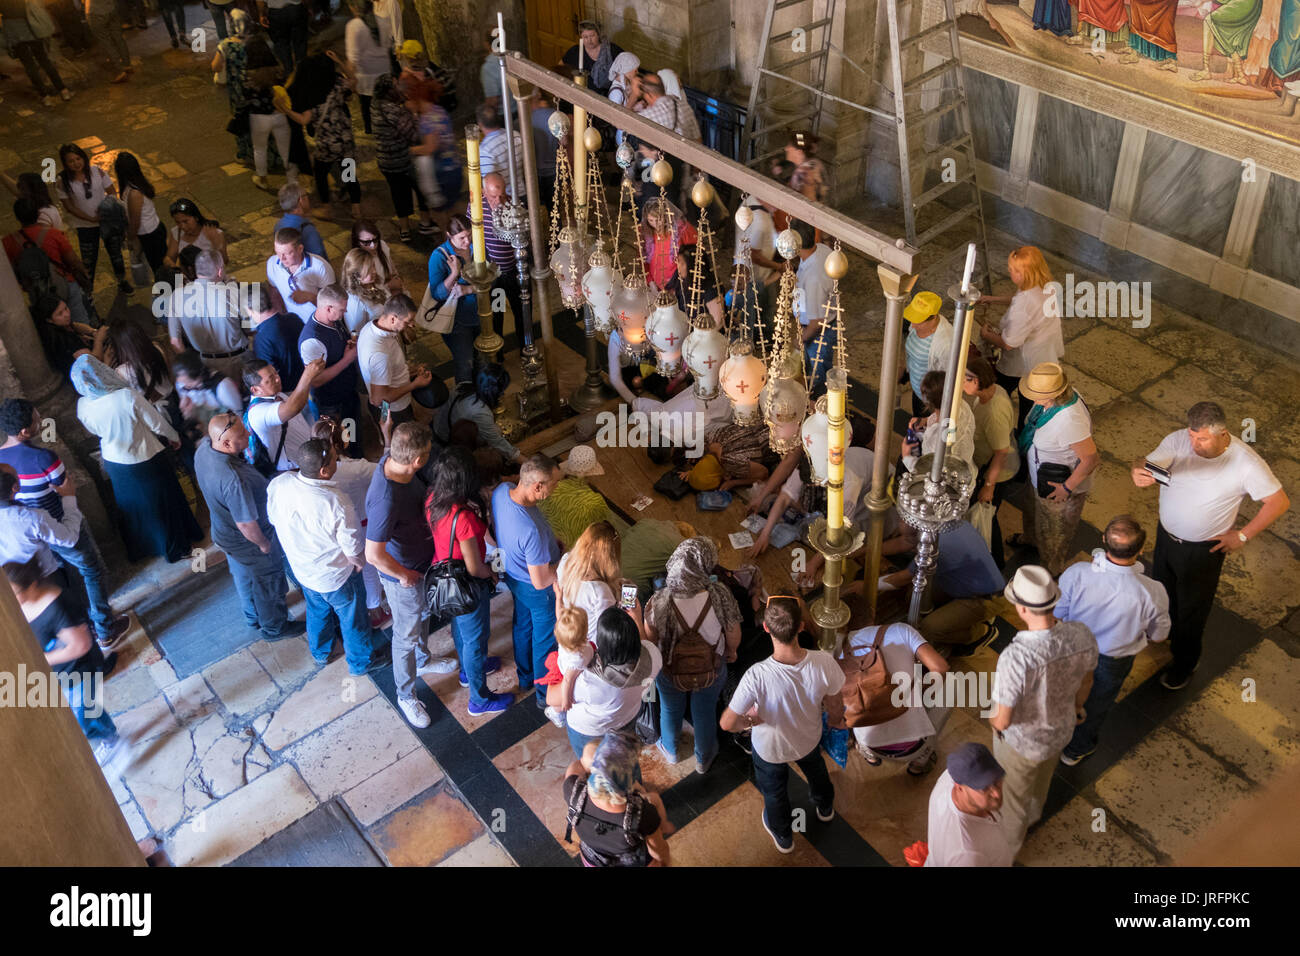 A crowd of penitents gathers around the Stone of Annointing in the Church of the Holy Sepulchre in the Old City of Jerusalem - Stock Image